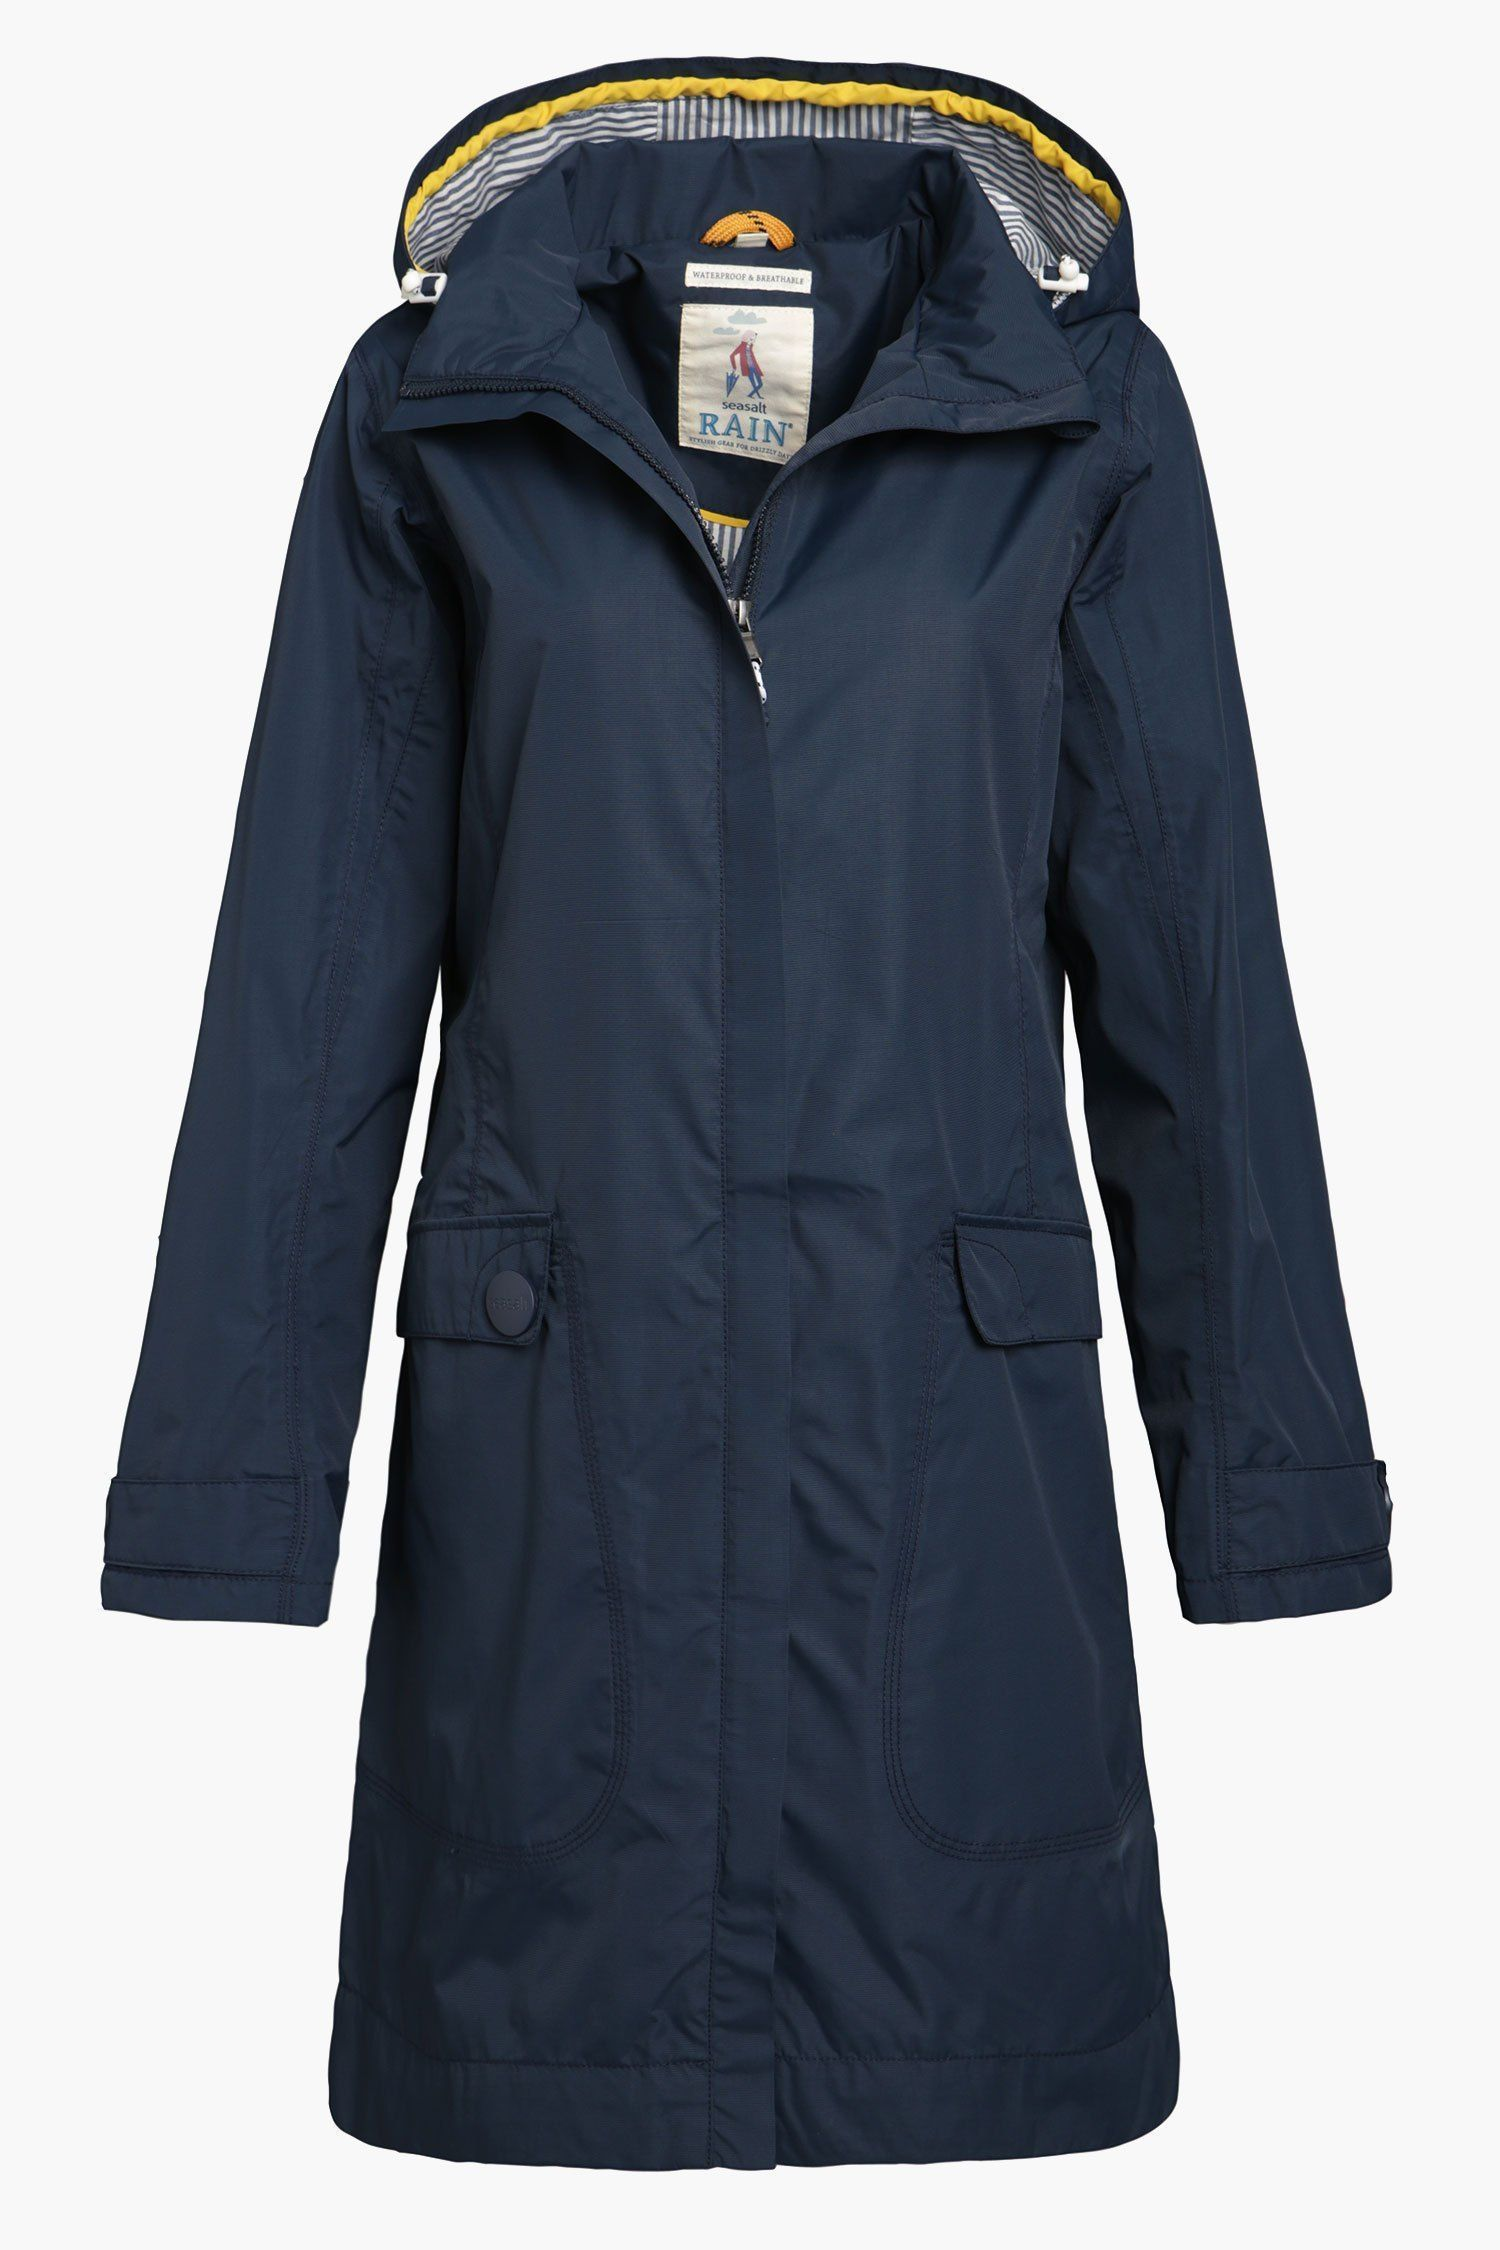 Flattering, practical Seasalt raincoat for women. Lightweight and knee  length. Waterproof, windproof